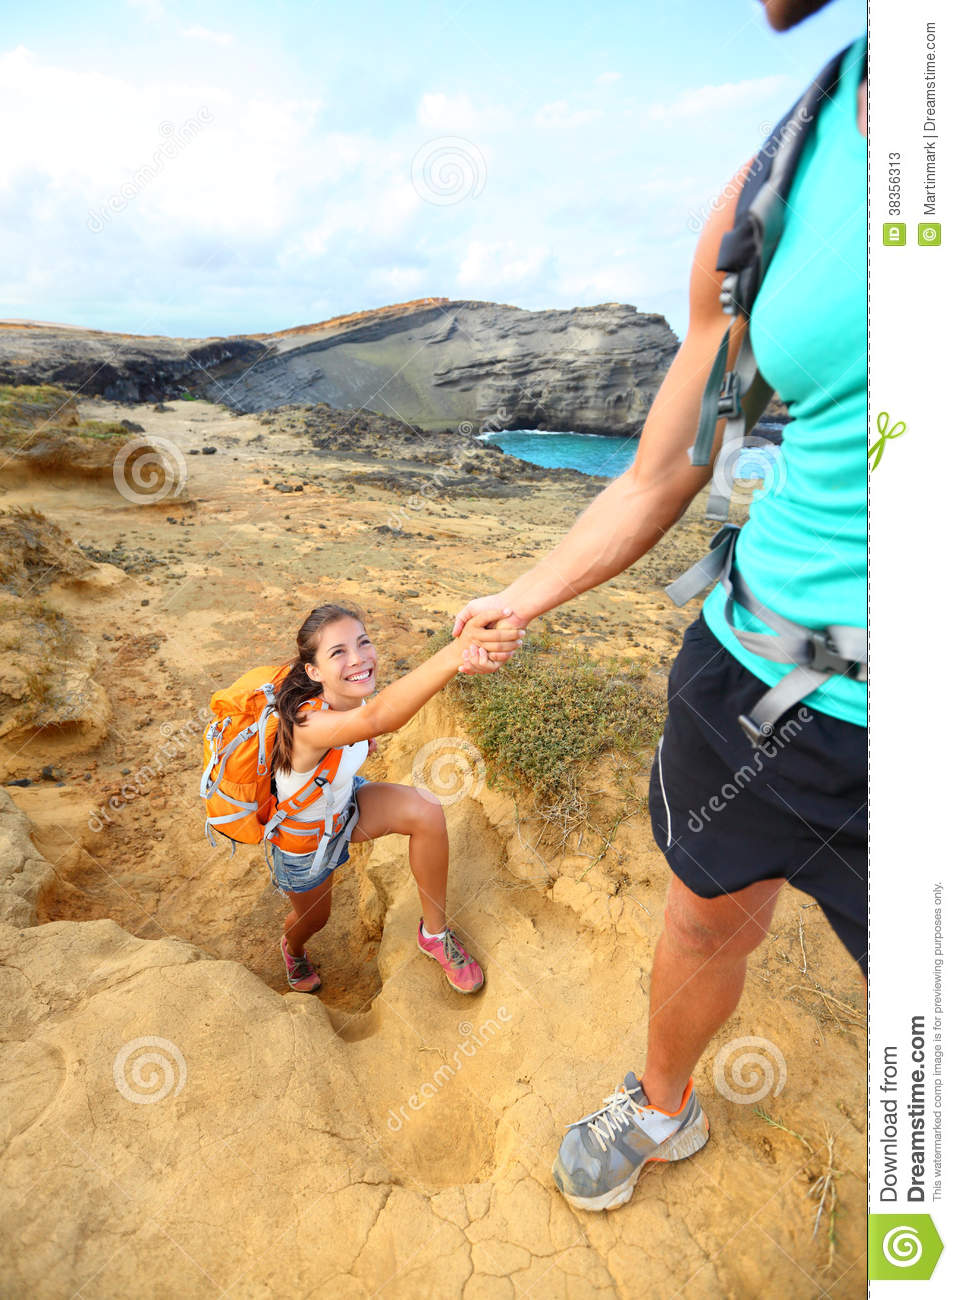 Help - hiker woman getting helping hand hiking